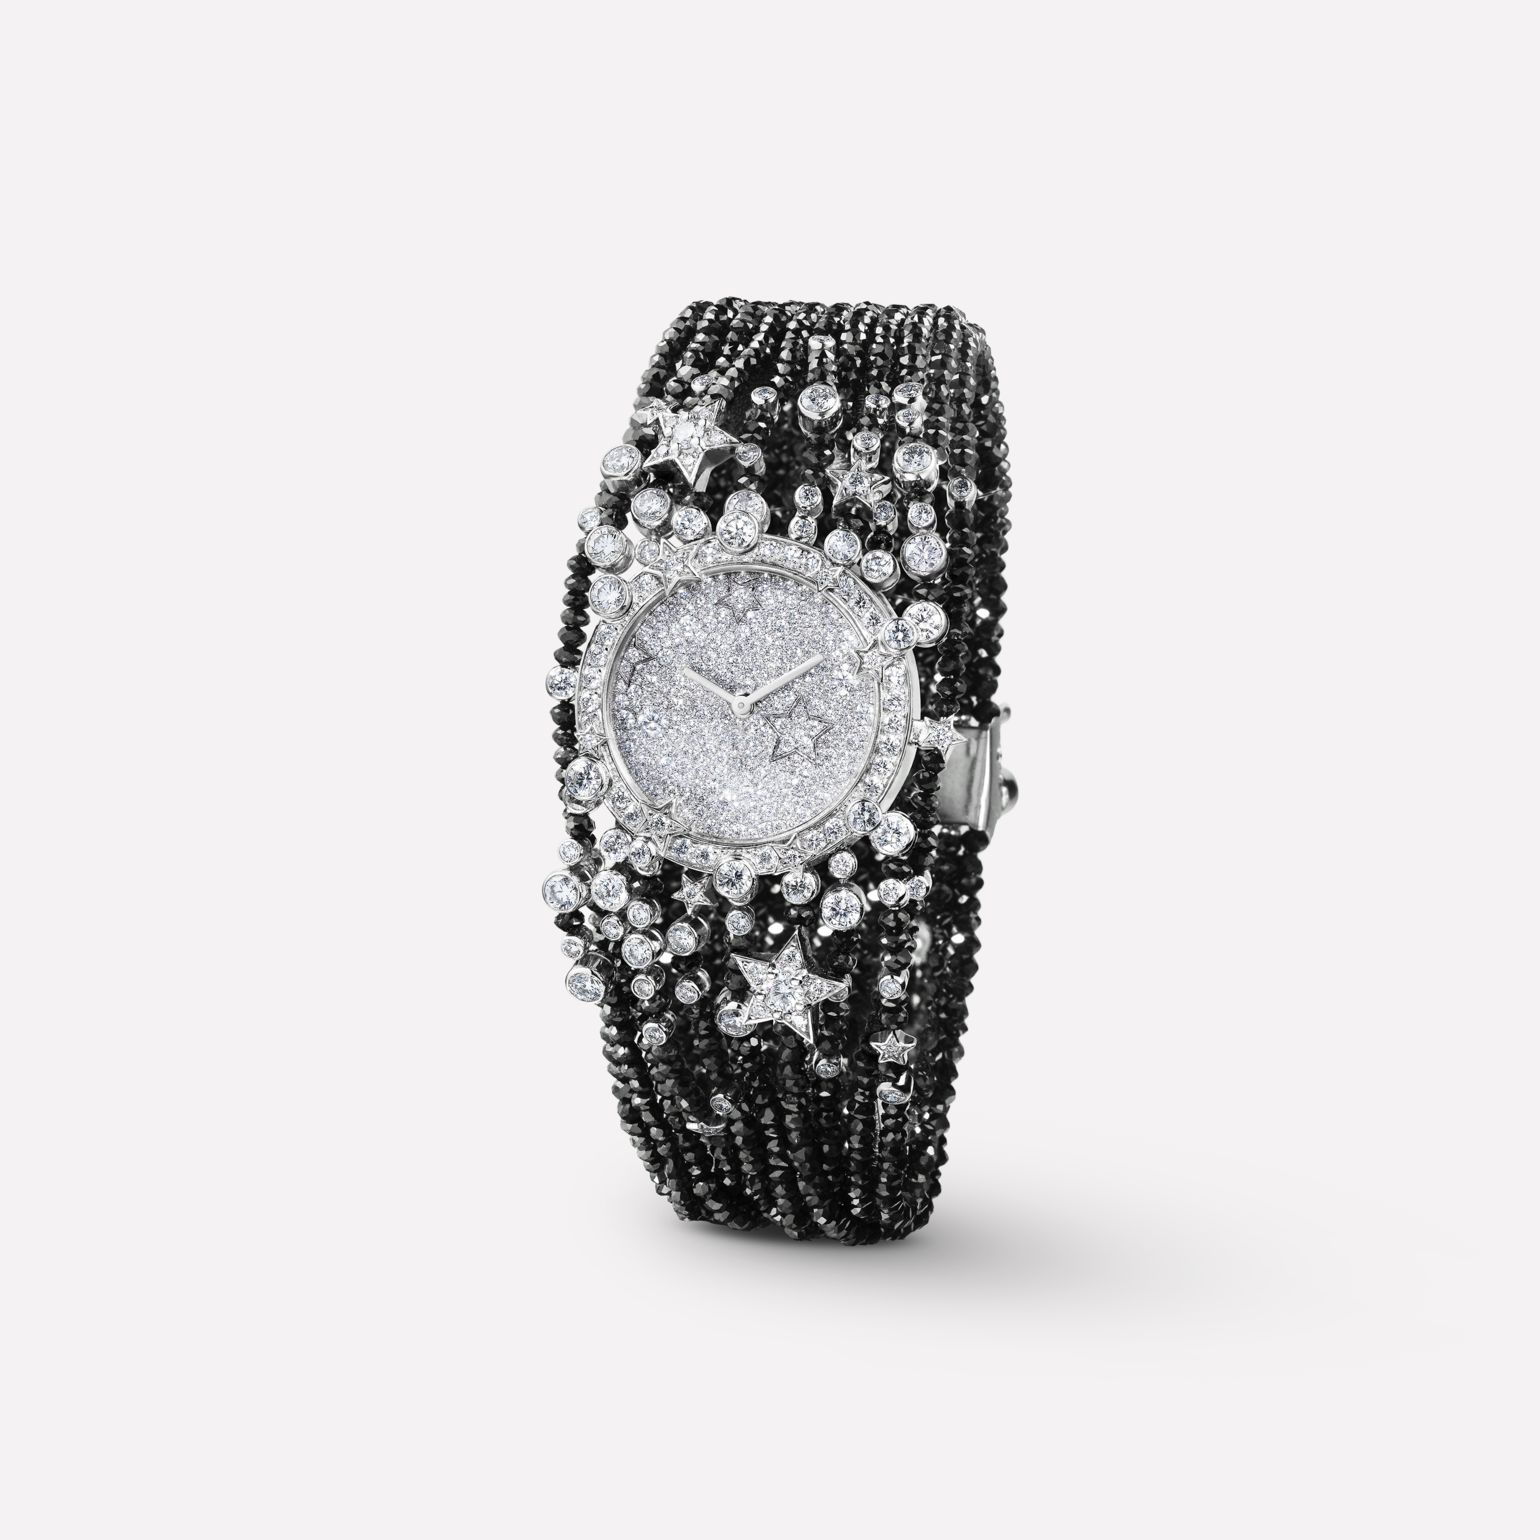 Comète Jewelry Watch Starry night motif in 18K white and black gold and diamonds